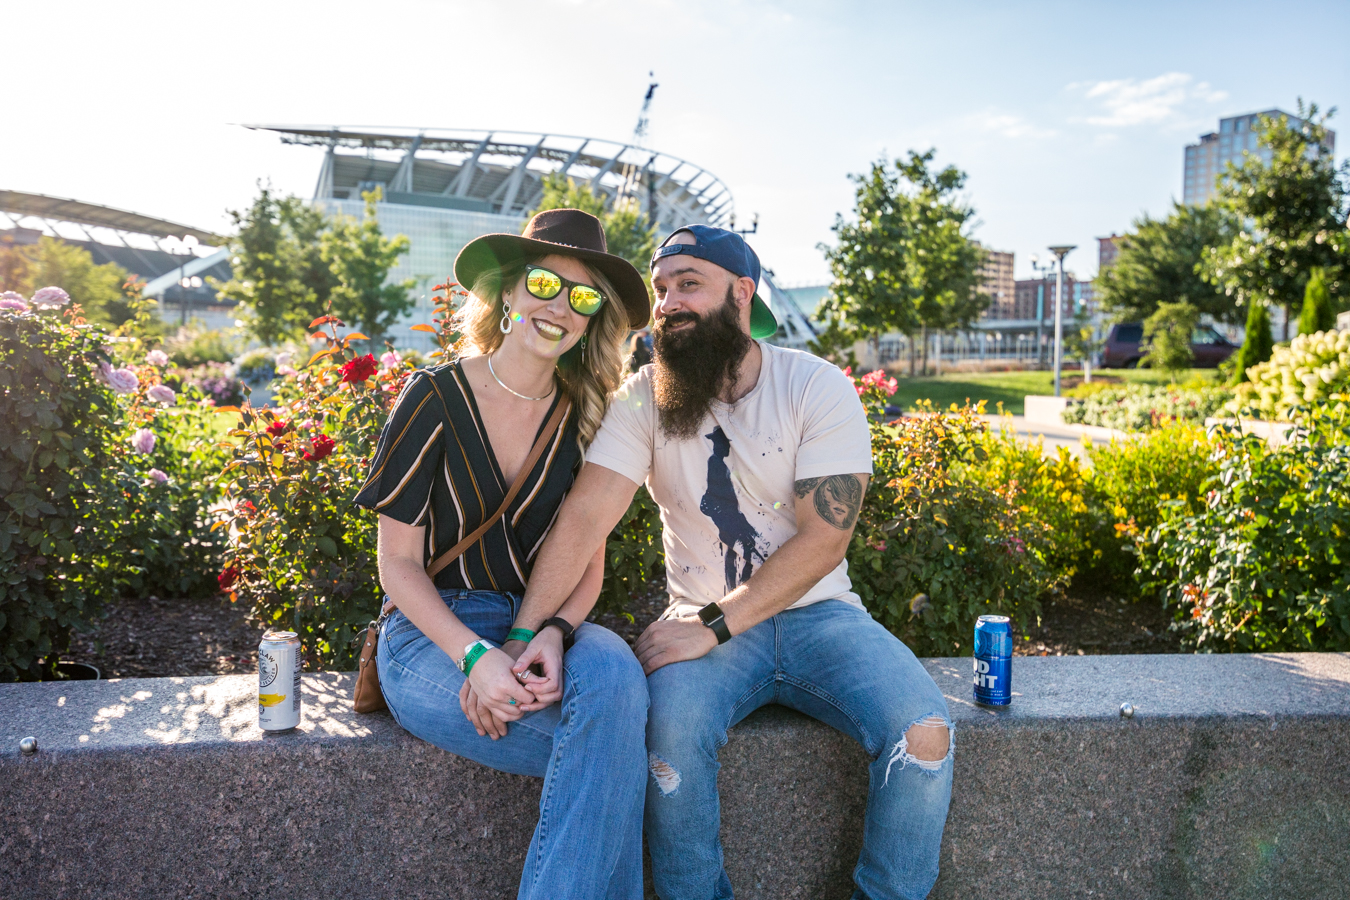 The Whispering Beard Folk Festival jammed for three days at Smale Park from Thursday, August 22 to Saturday, August 24. The festival was formerly held in Friendship, IN before coming to Cincinnati's riverfront this year. / Image: Catherine Viox // Published: 8.29.19